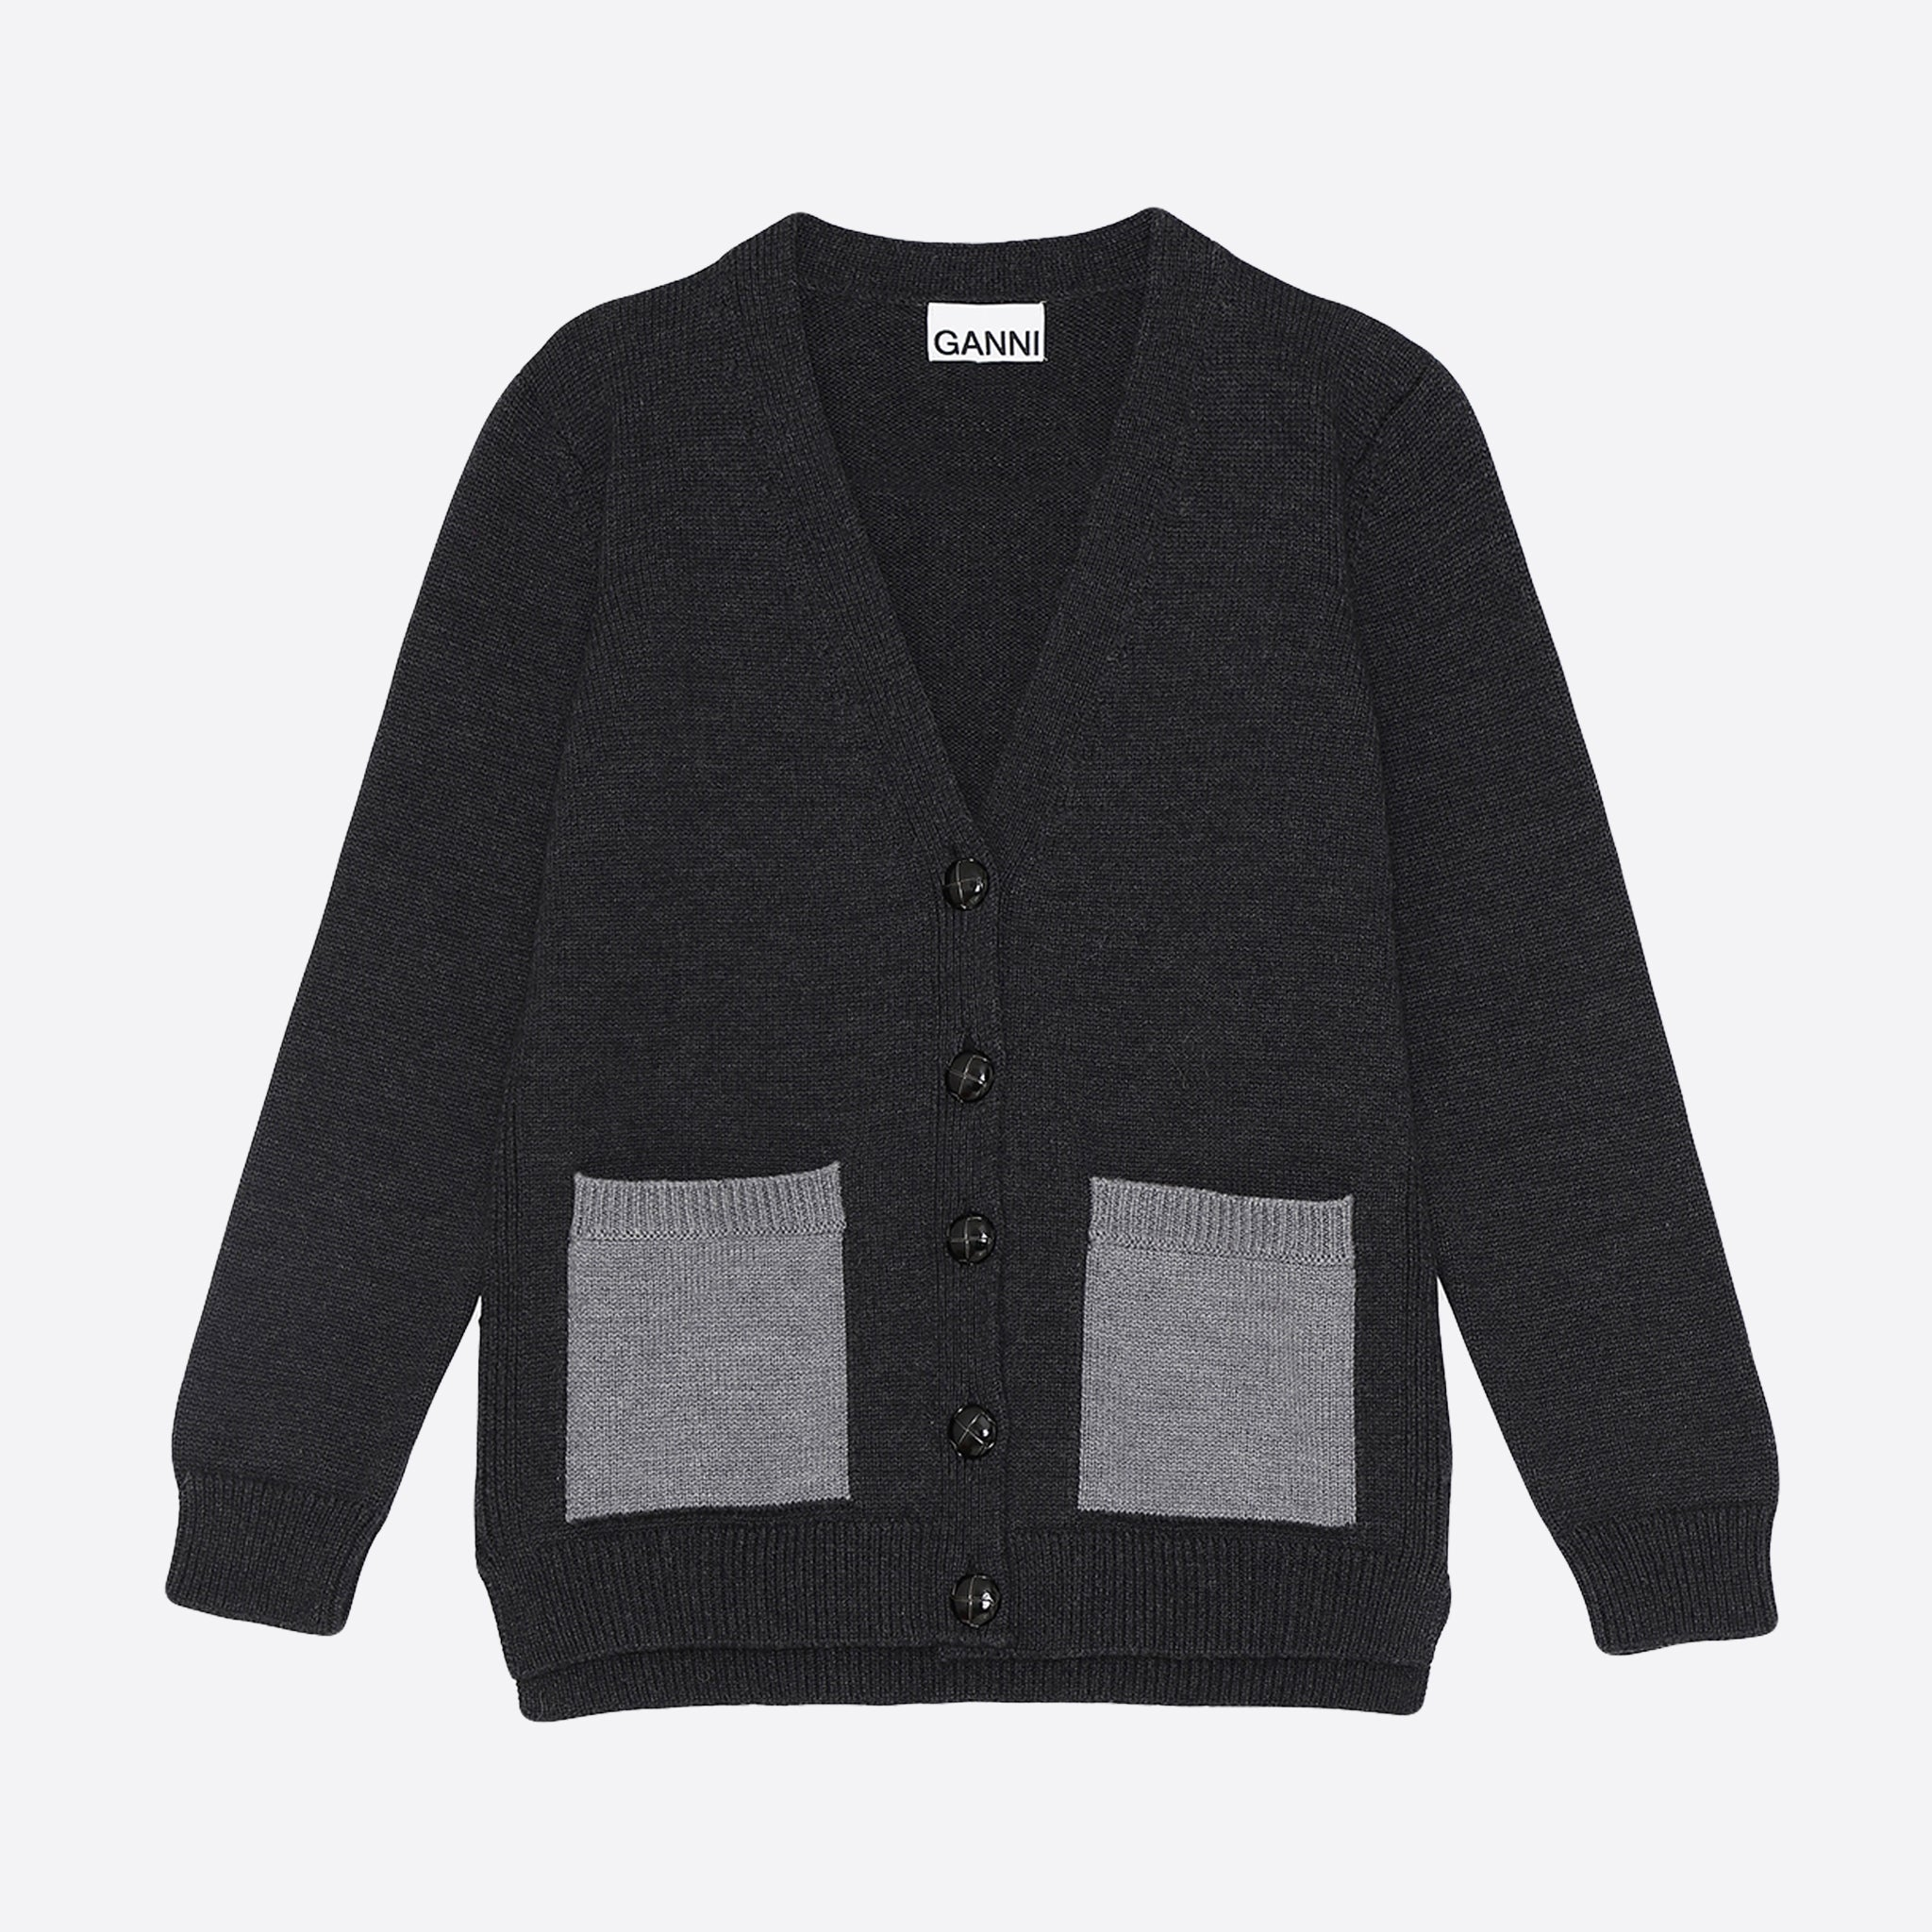 Ganni Wool Knit Cardigan in Phantom